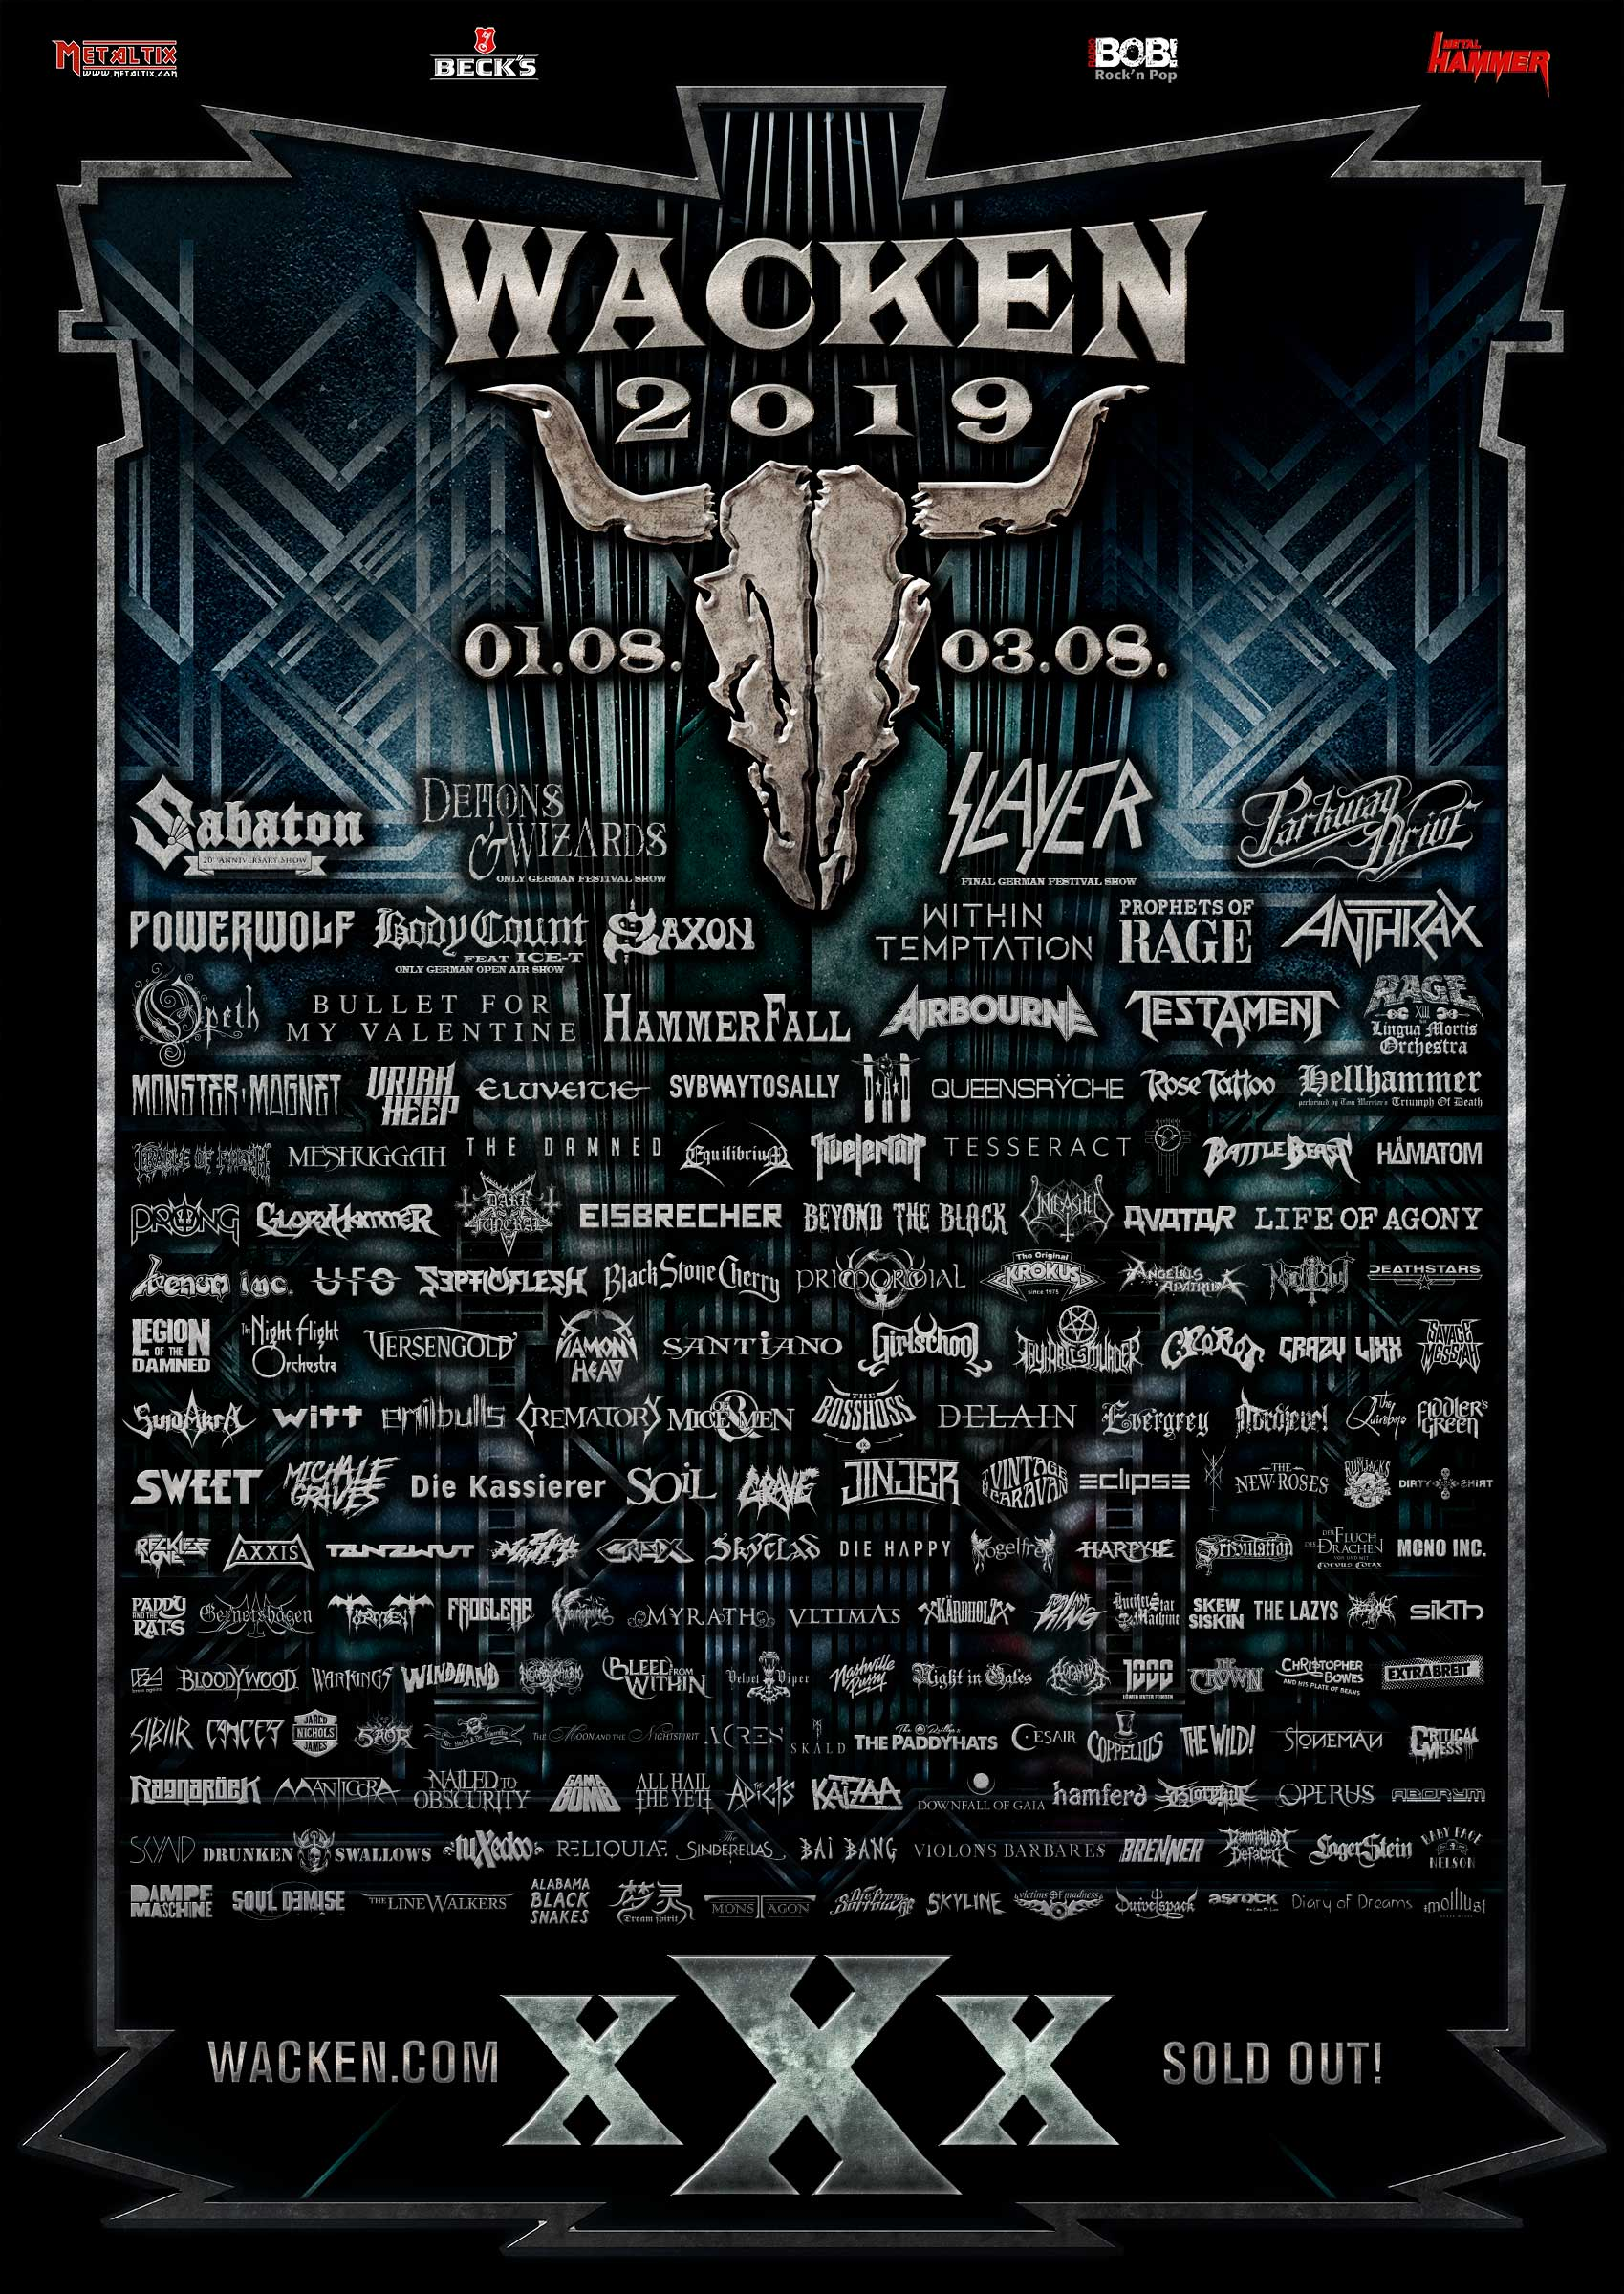 53 new bands for the Easter holidays!   W:O:A - Wacken Open Air